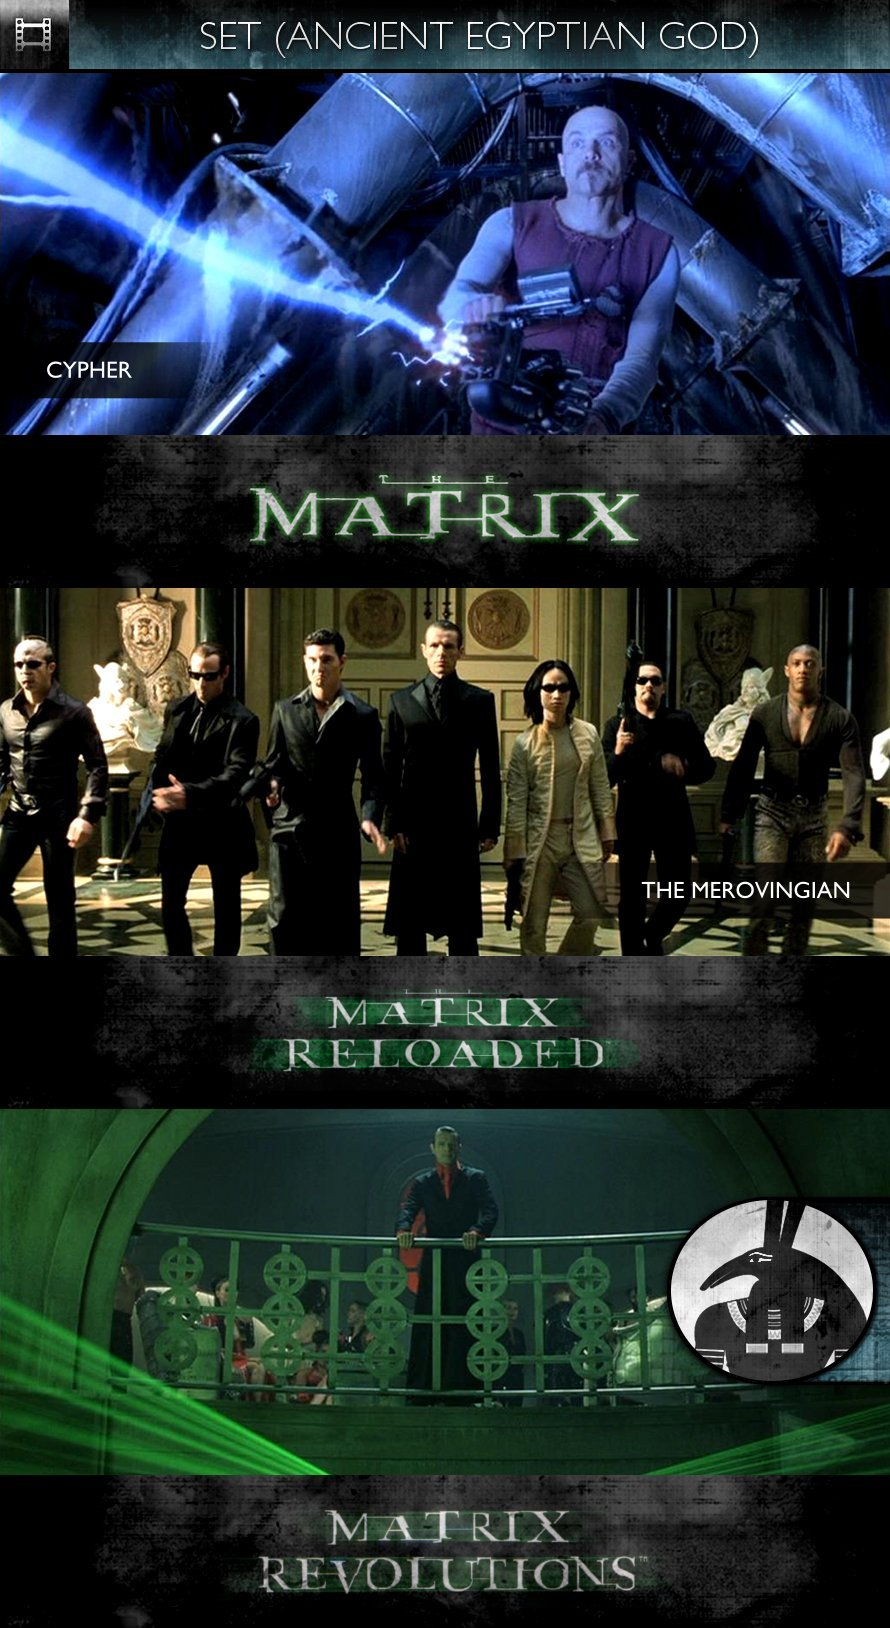 SET - The Matrix Trilogy (1999-2003) - Cypher & The Merovingian